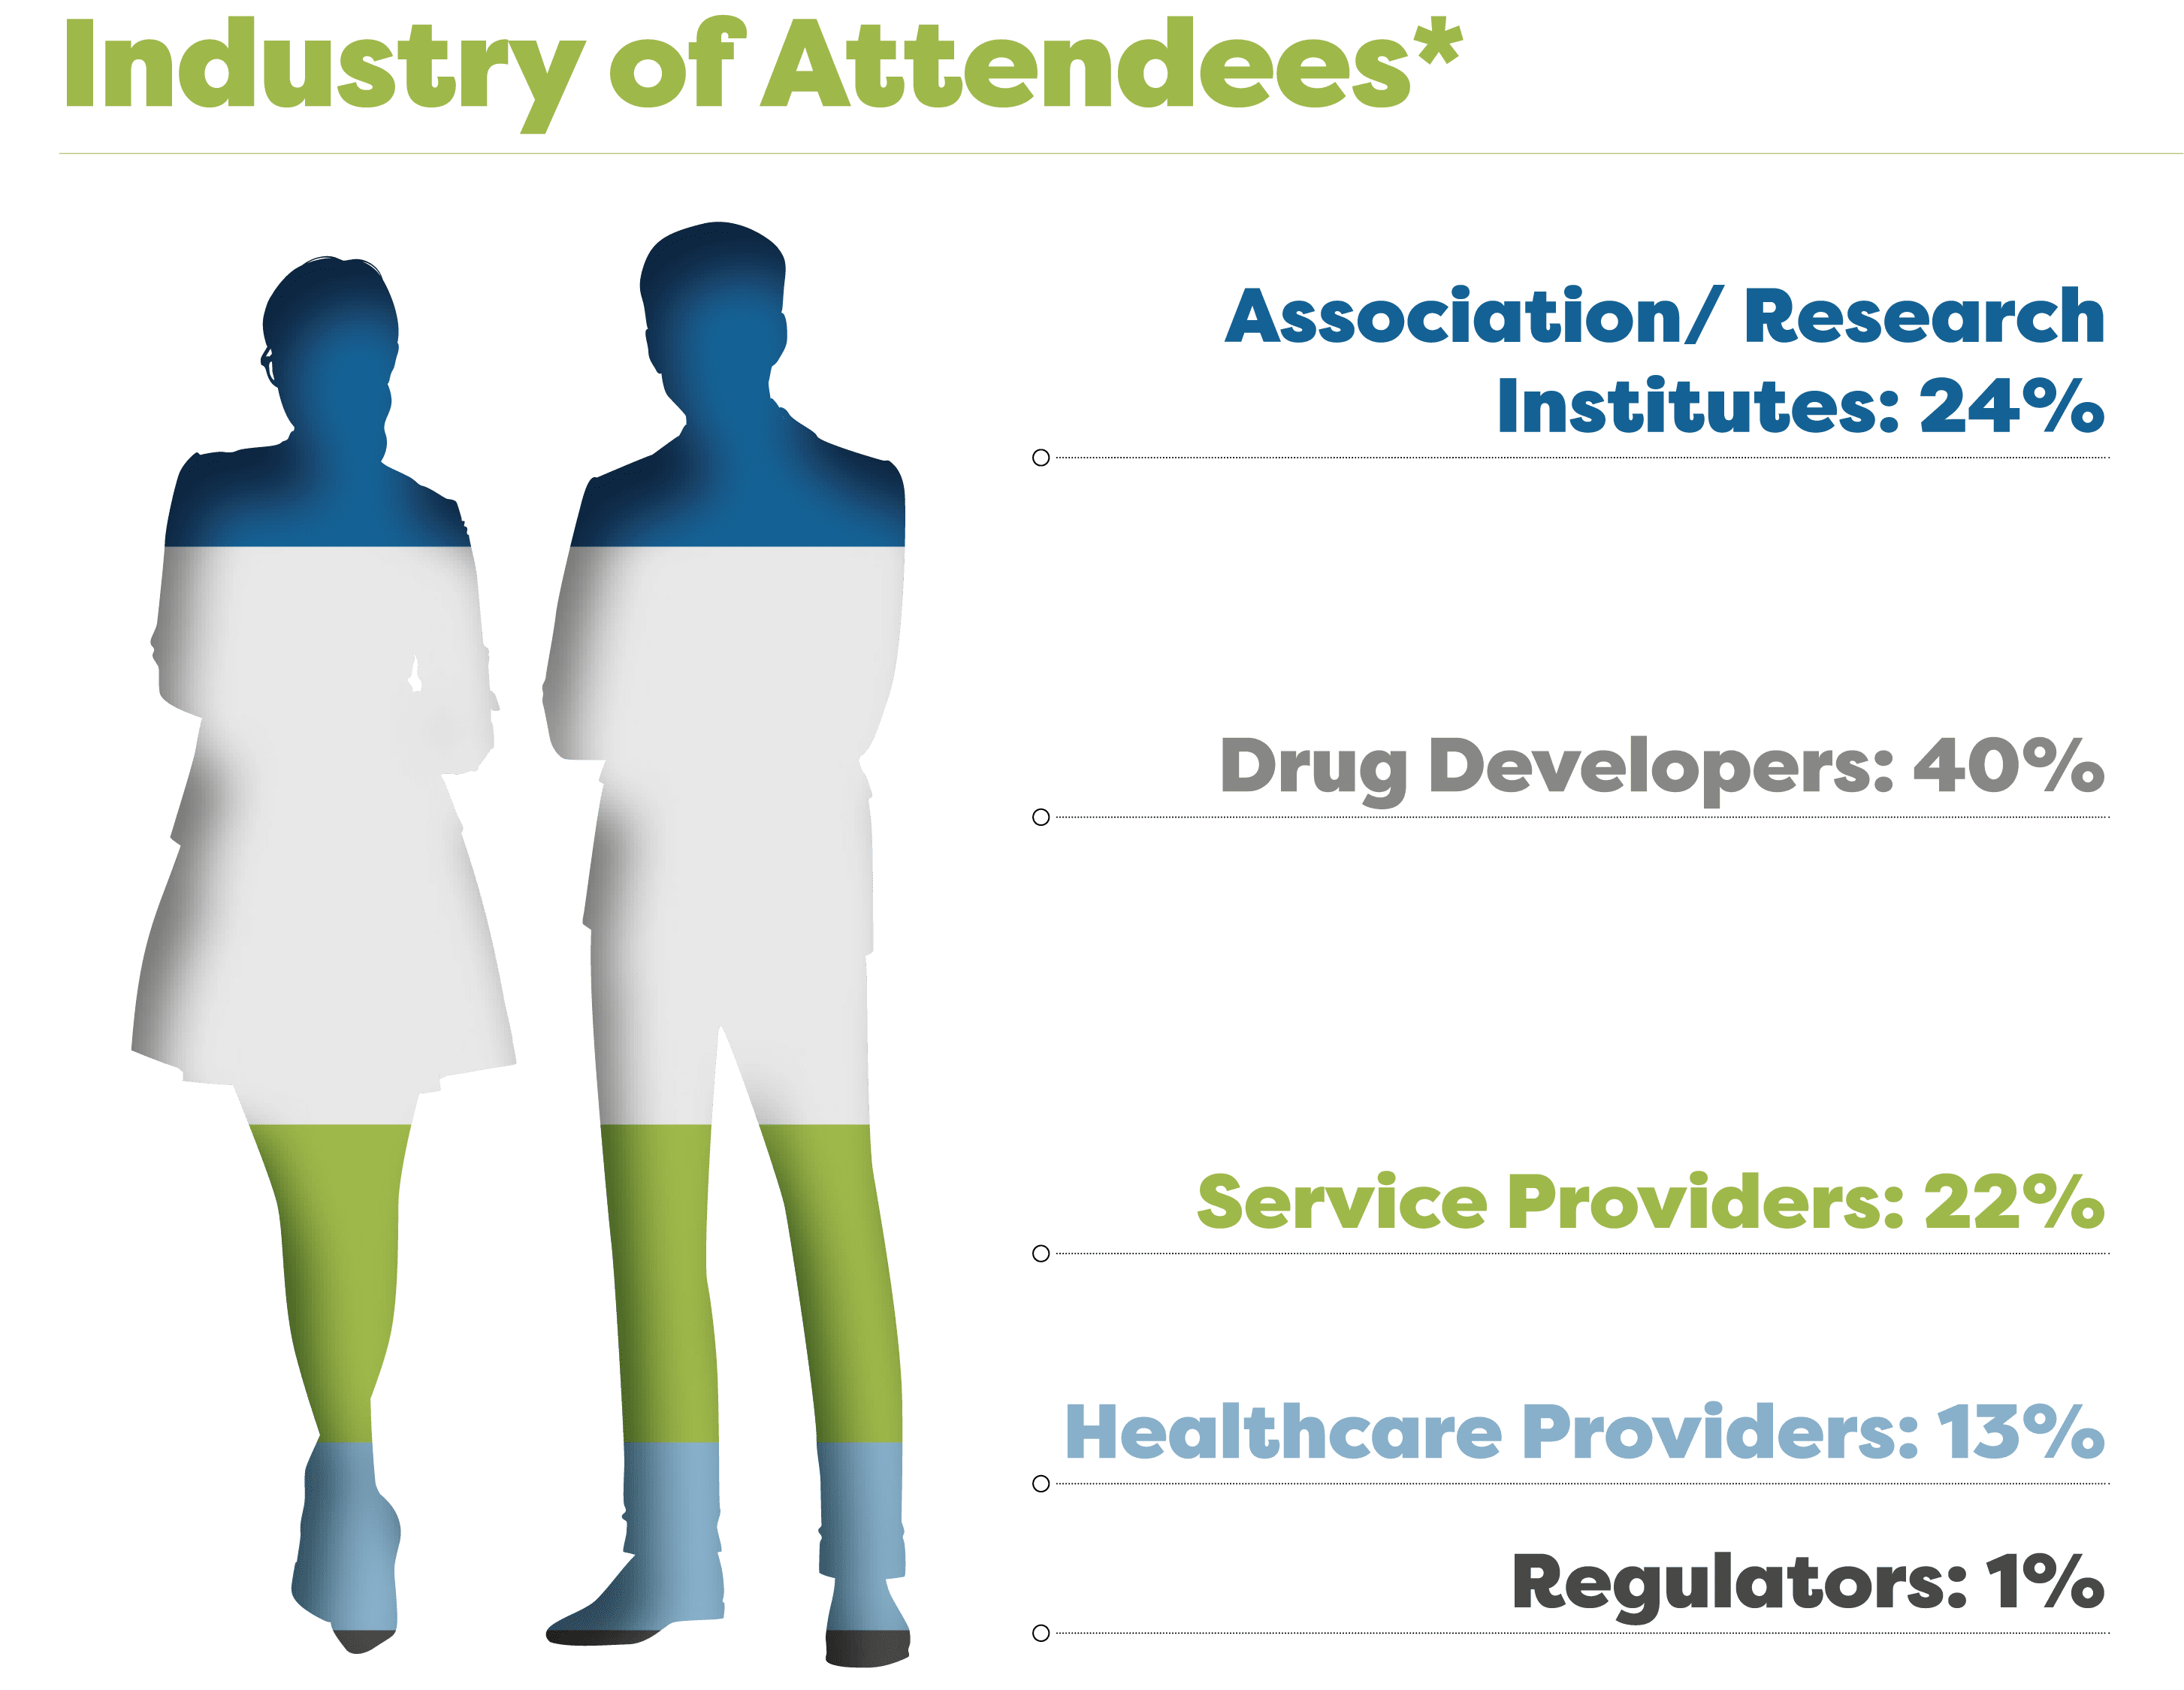 Industry of attendees